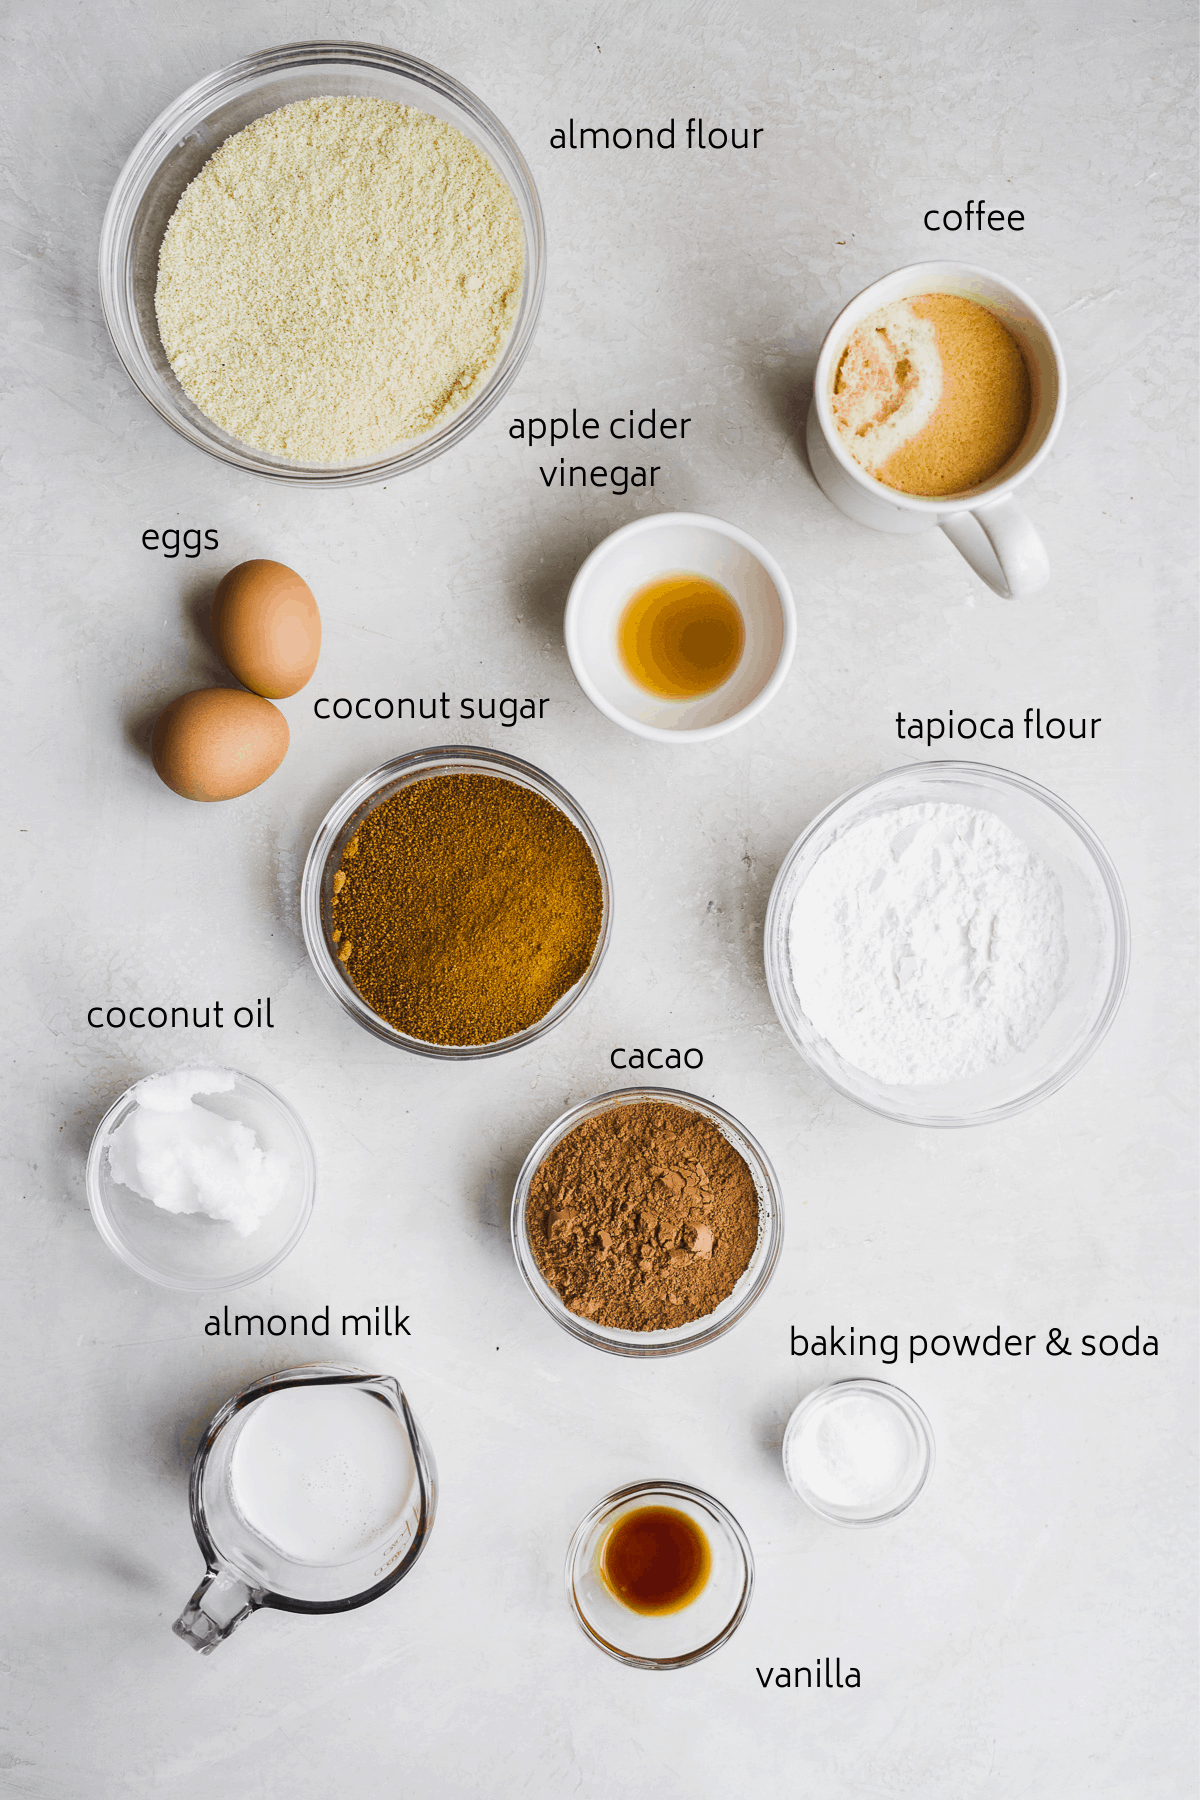 Image of cupcake ingredients with labels on a white surface.